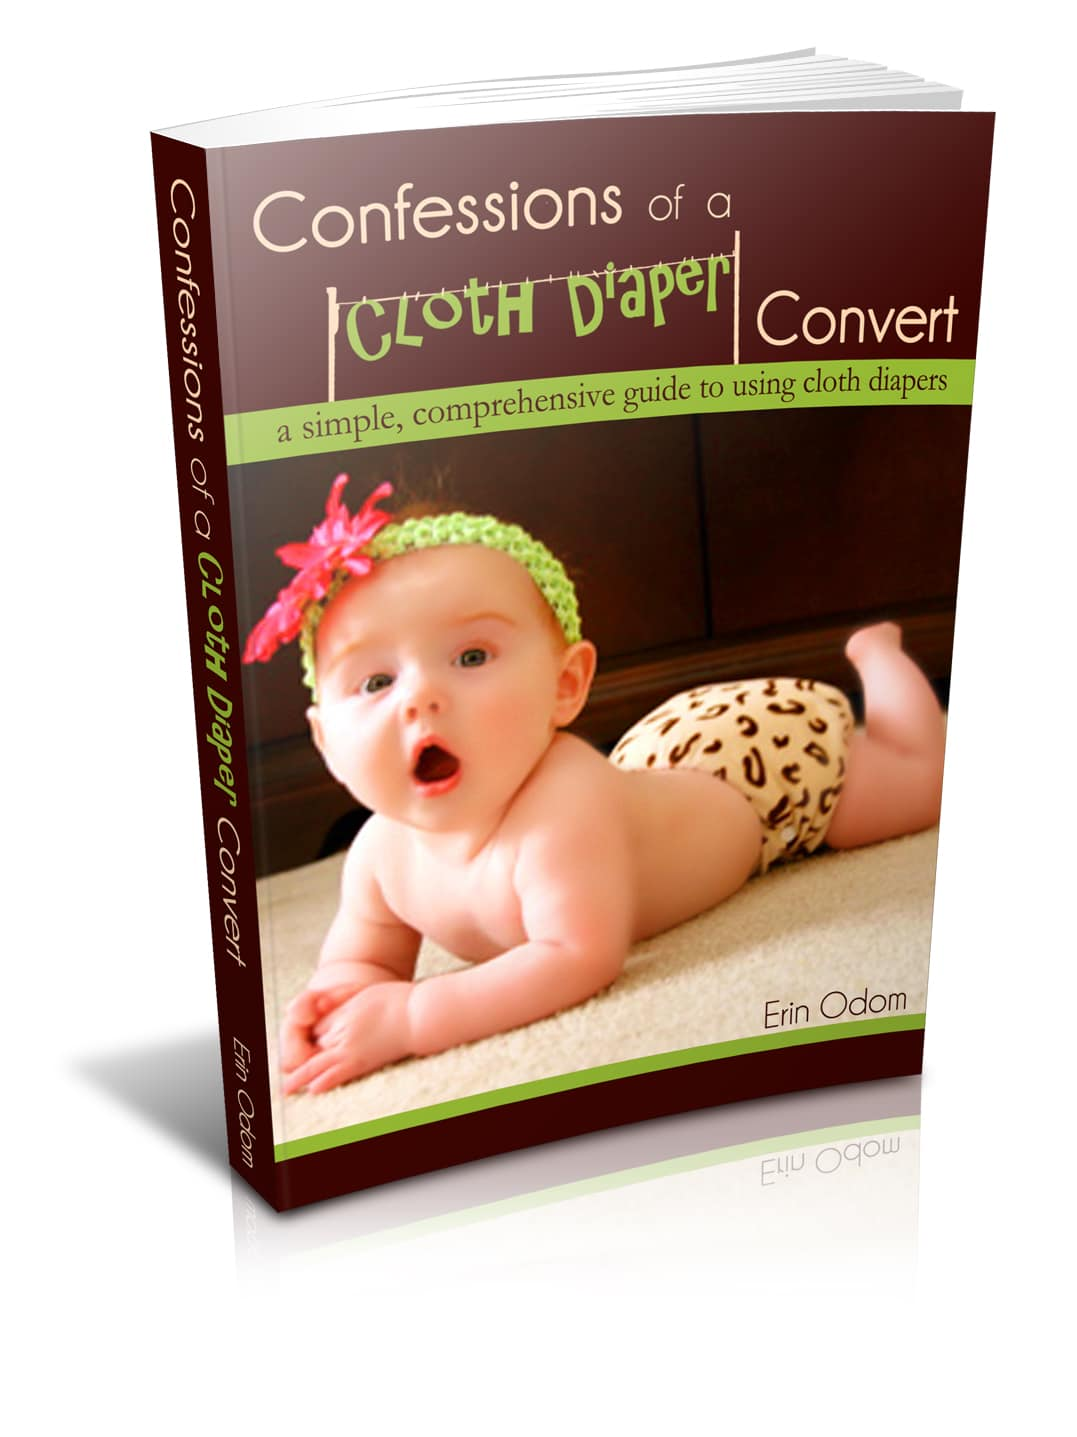 Confessions of a Cloth Diaper Convert: A Simple, Comprehensive Guide to Using Cloth Diapers